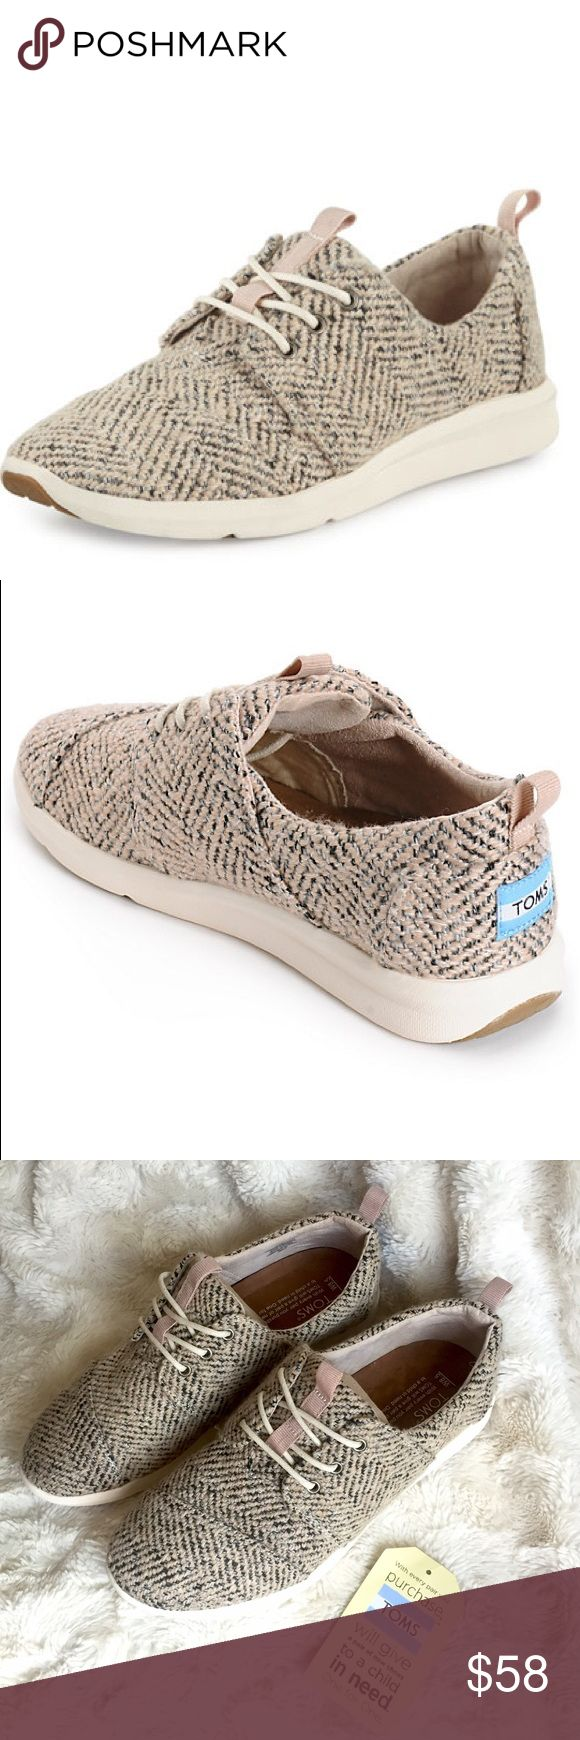 TOMS Del Rey Dusty Rose Boucle Sneaker New, never worn with detached tag. Super cute casual sneakers by TOMS. Highly sought after, sold out everywhere else online. Size 8.5, runs true to size in my opinion. First two photos are stock, last two photos are of the actual shoes. Smoke/pet free home. Ask all questions before buying  NO trades/lowball offers. Bundle for a discount  TOMS Shoes Sneakers